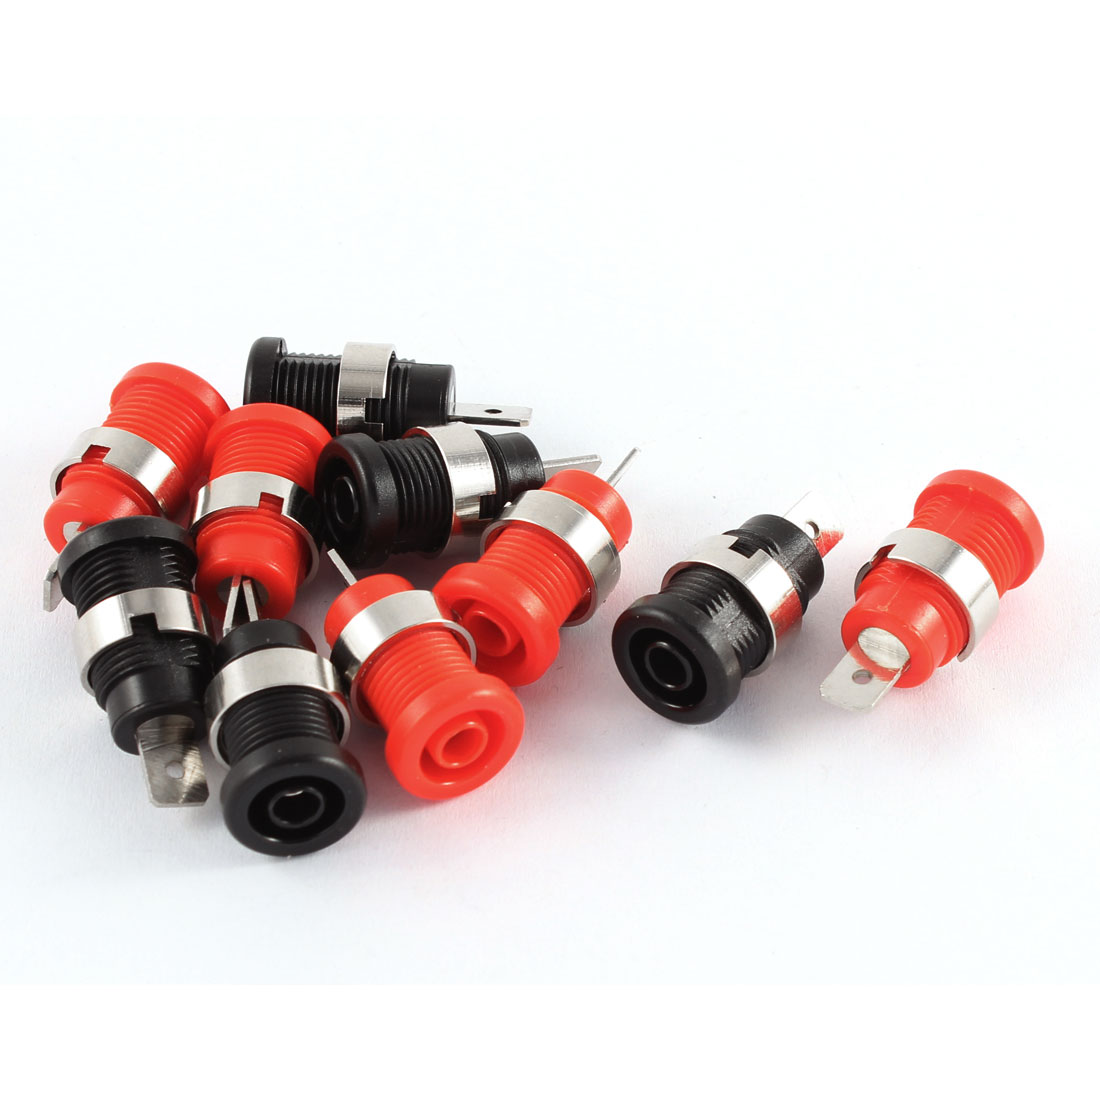 10 Pcs Black Red Plastic Housing Binding Post Banana Jack Adapter for 4mm Safety Protection